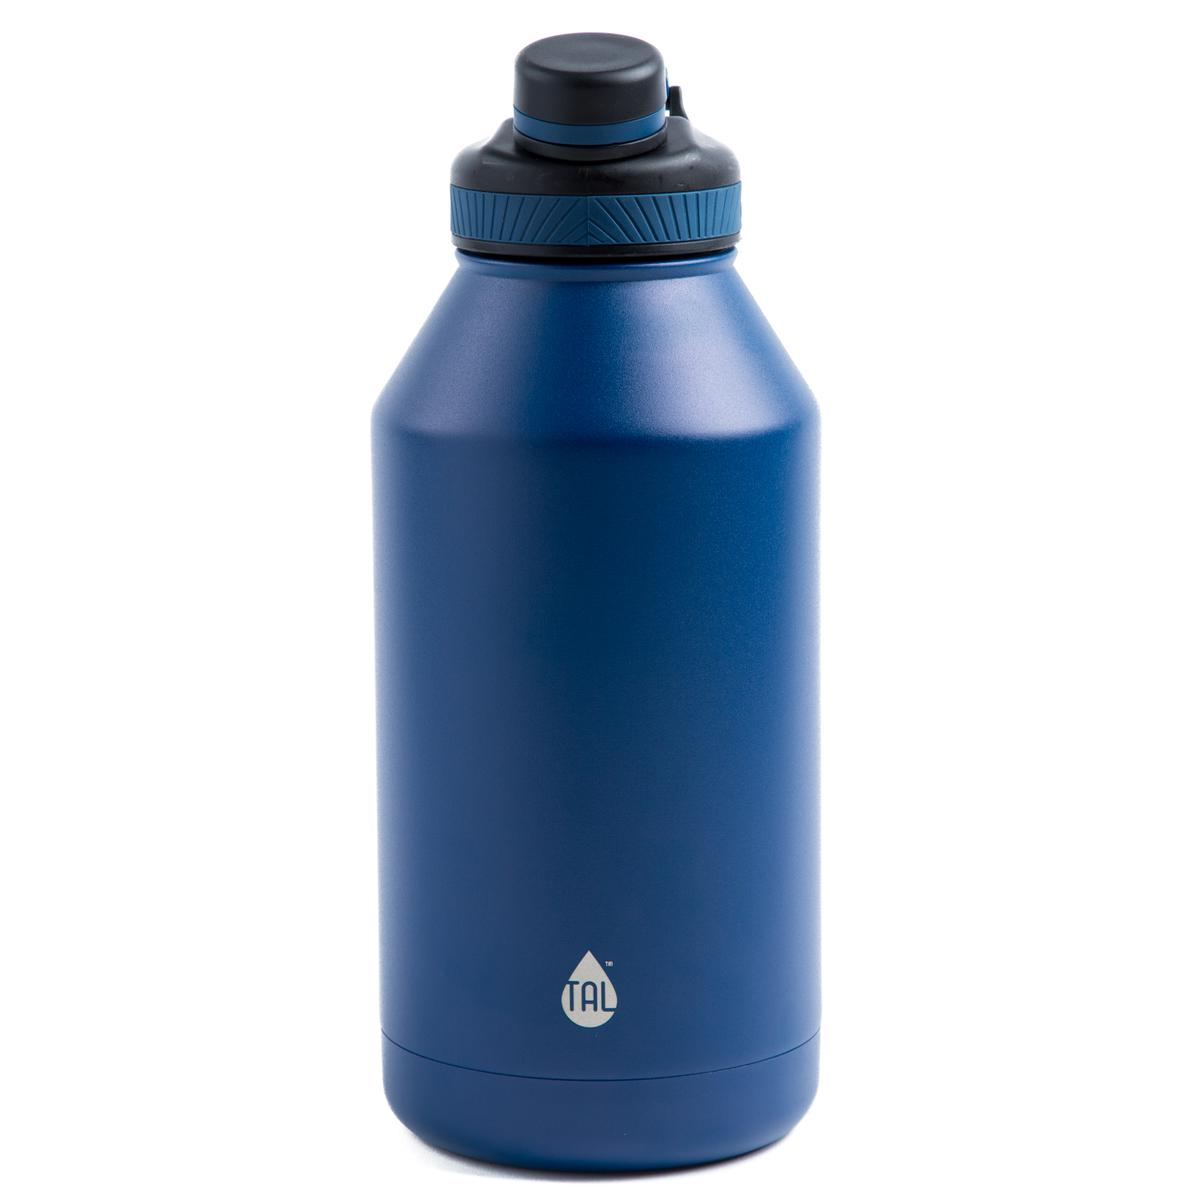 fb6f4271d8 TAL Navy 64oz Double Wall Vacuum Insulated Stainless Steel Ranger Pro Water  Bottle